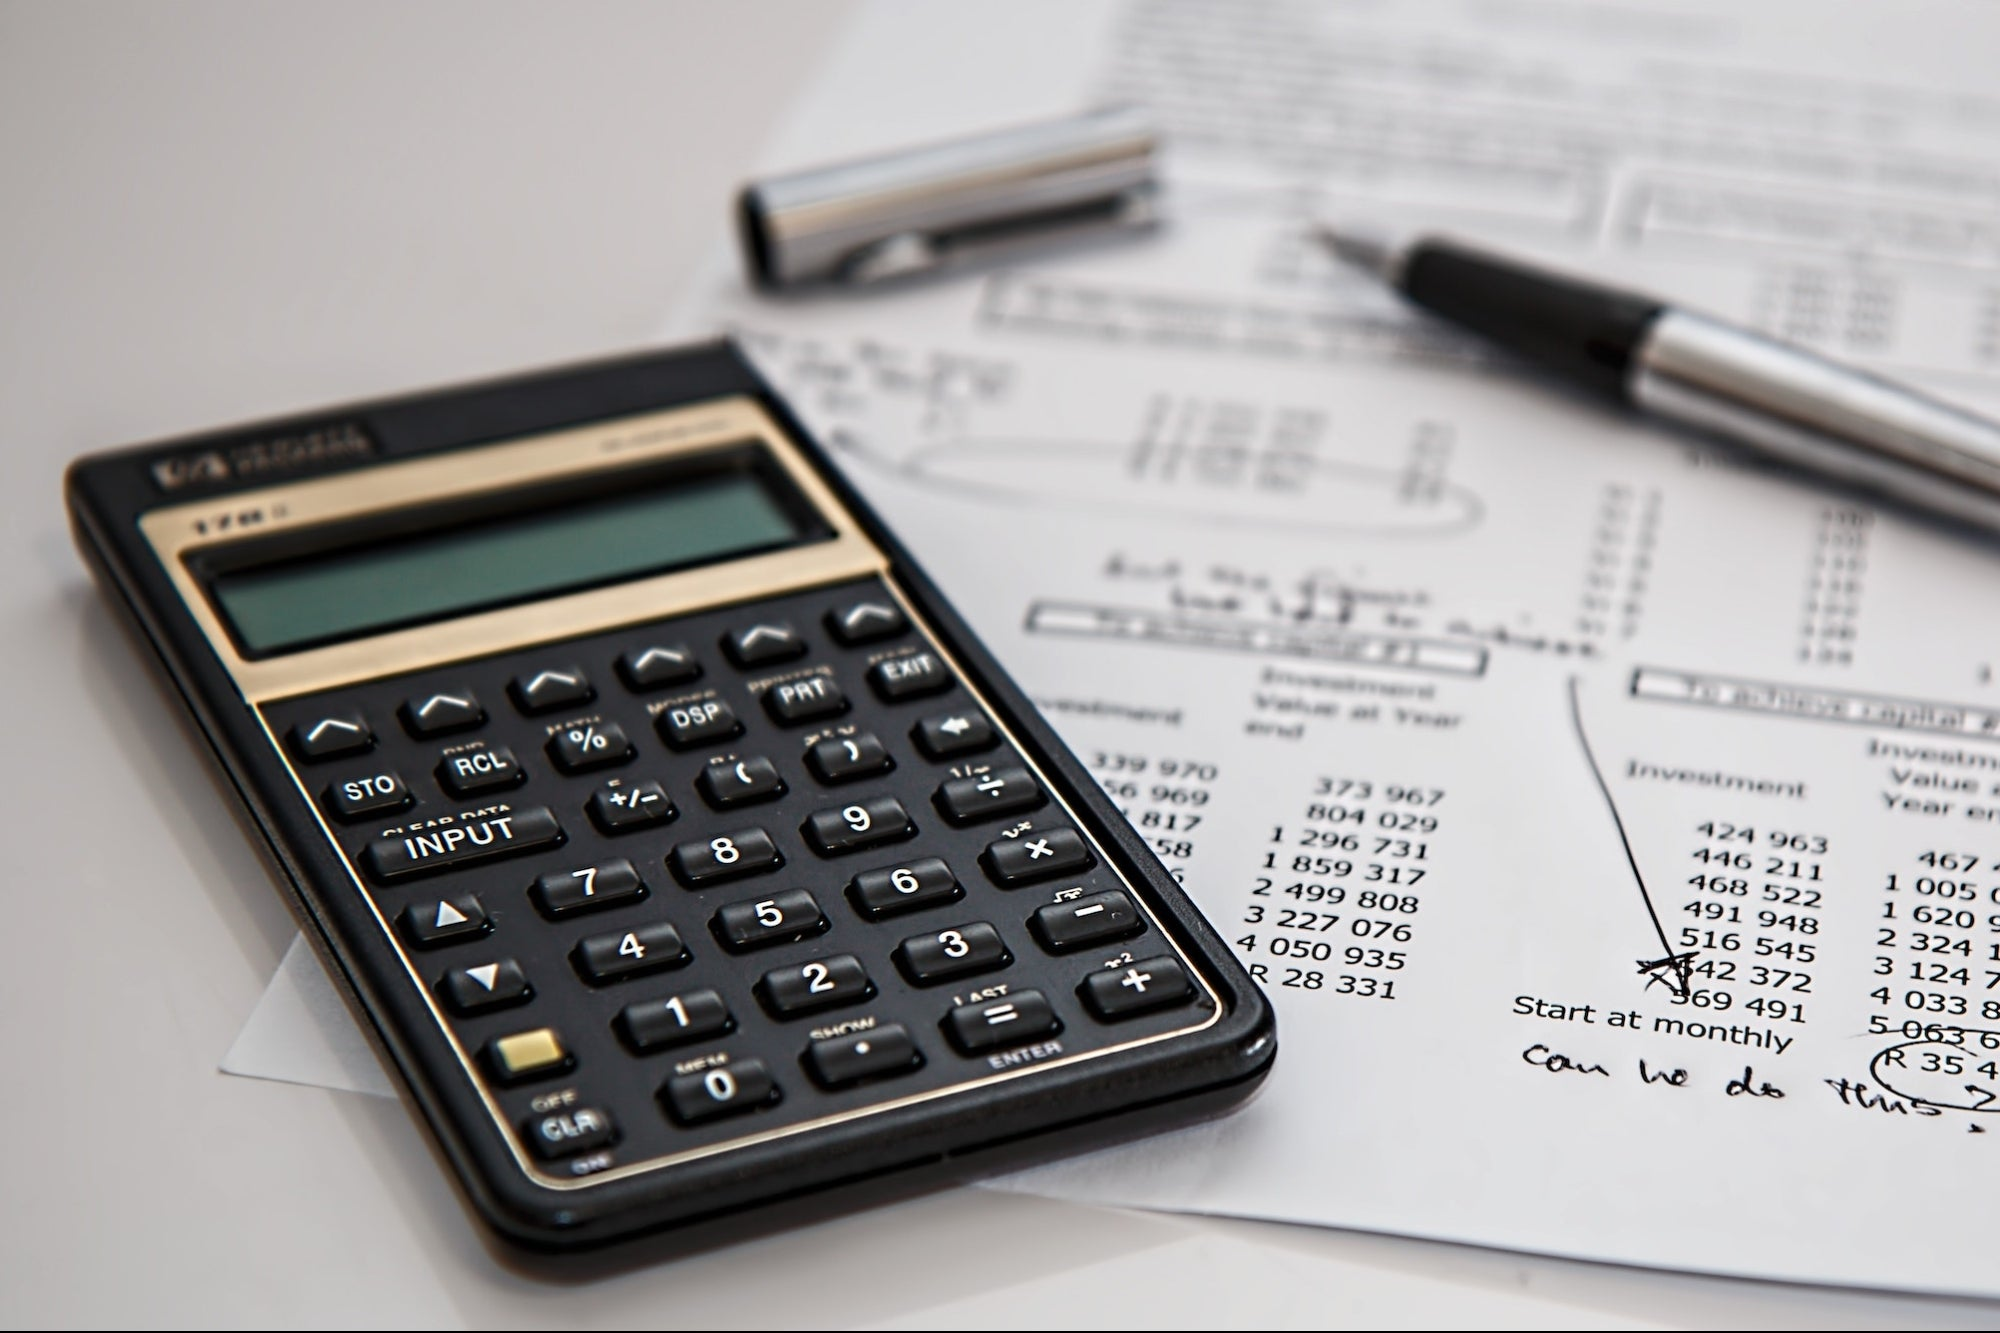 Learn How Math Can be Leveraged for Business Growth With These Prep Courses